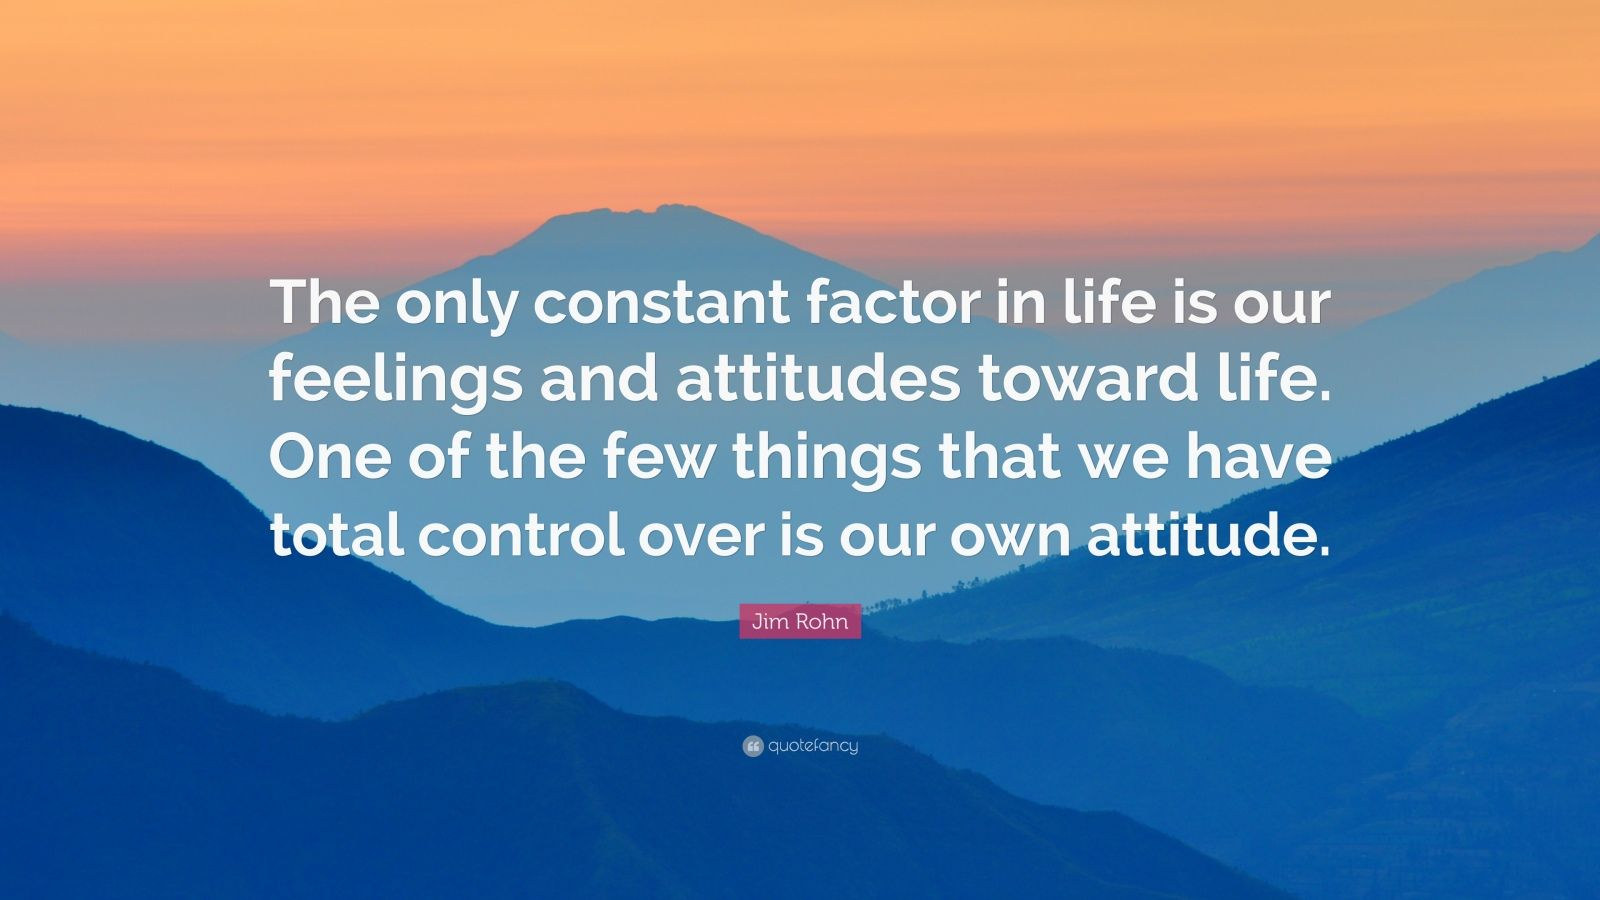 """Jim Rohn Quote: """"The only constant factor in life is our feelings and attitudes toward life. One of the few things that we have total control over is our own attitude."""""""